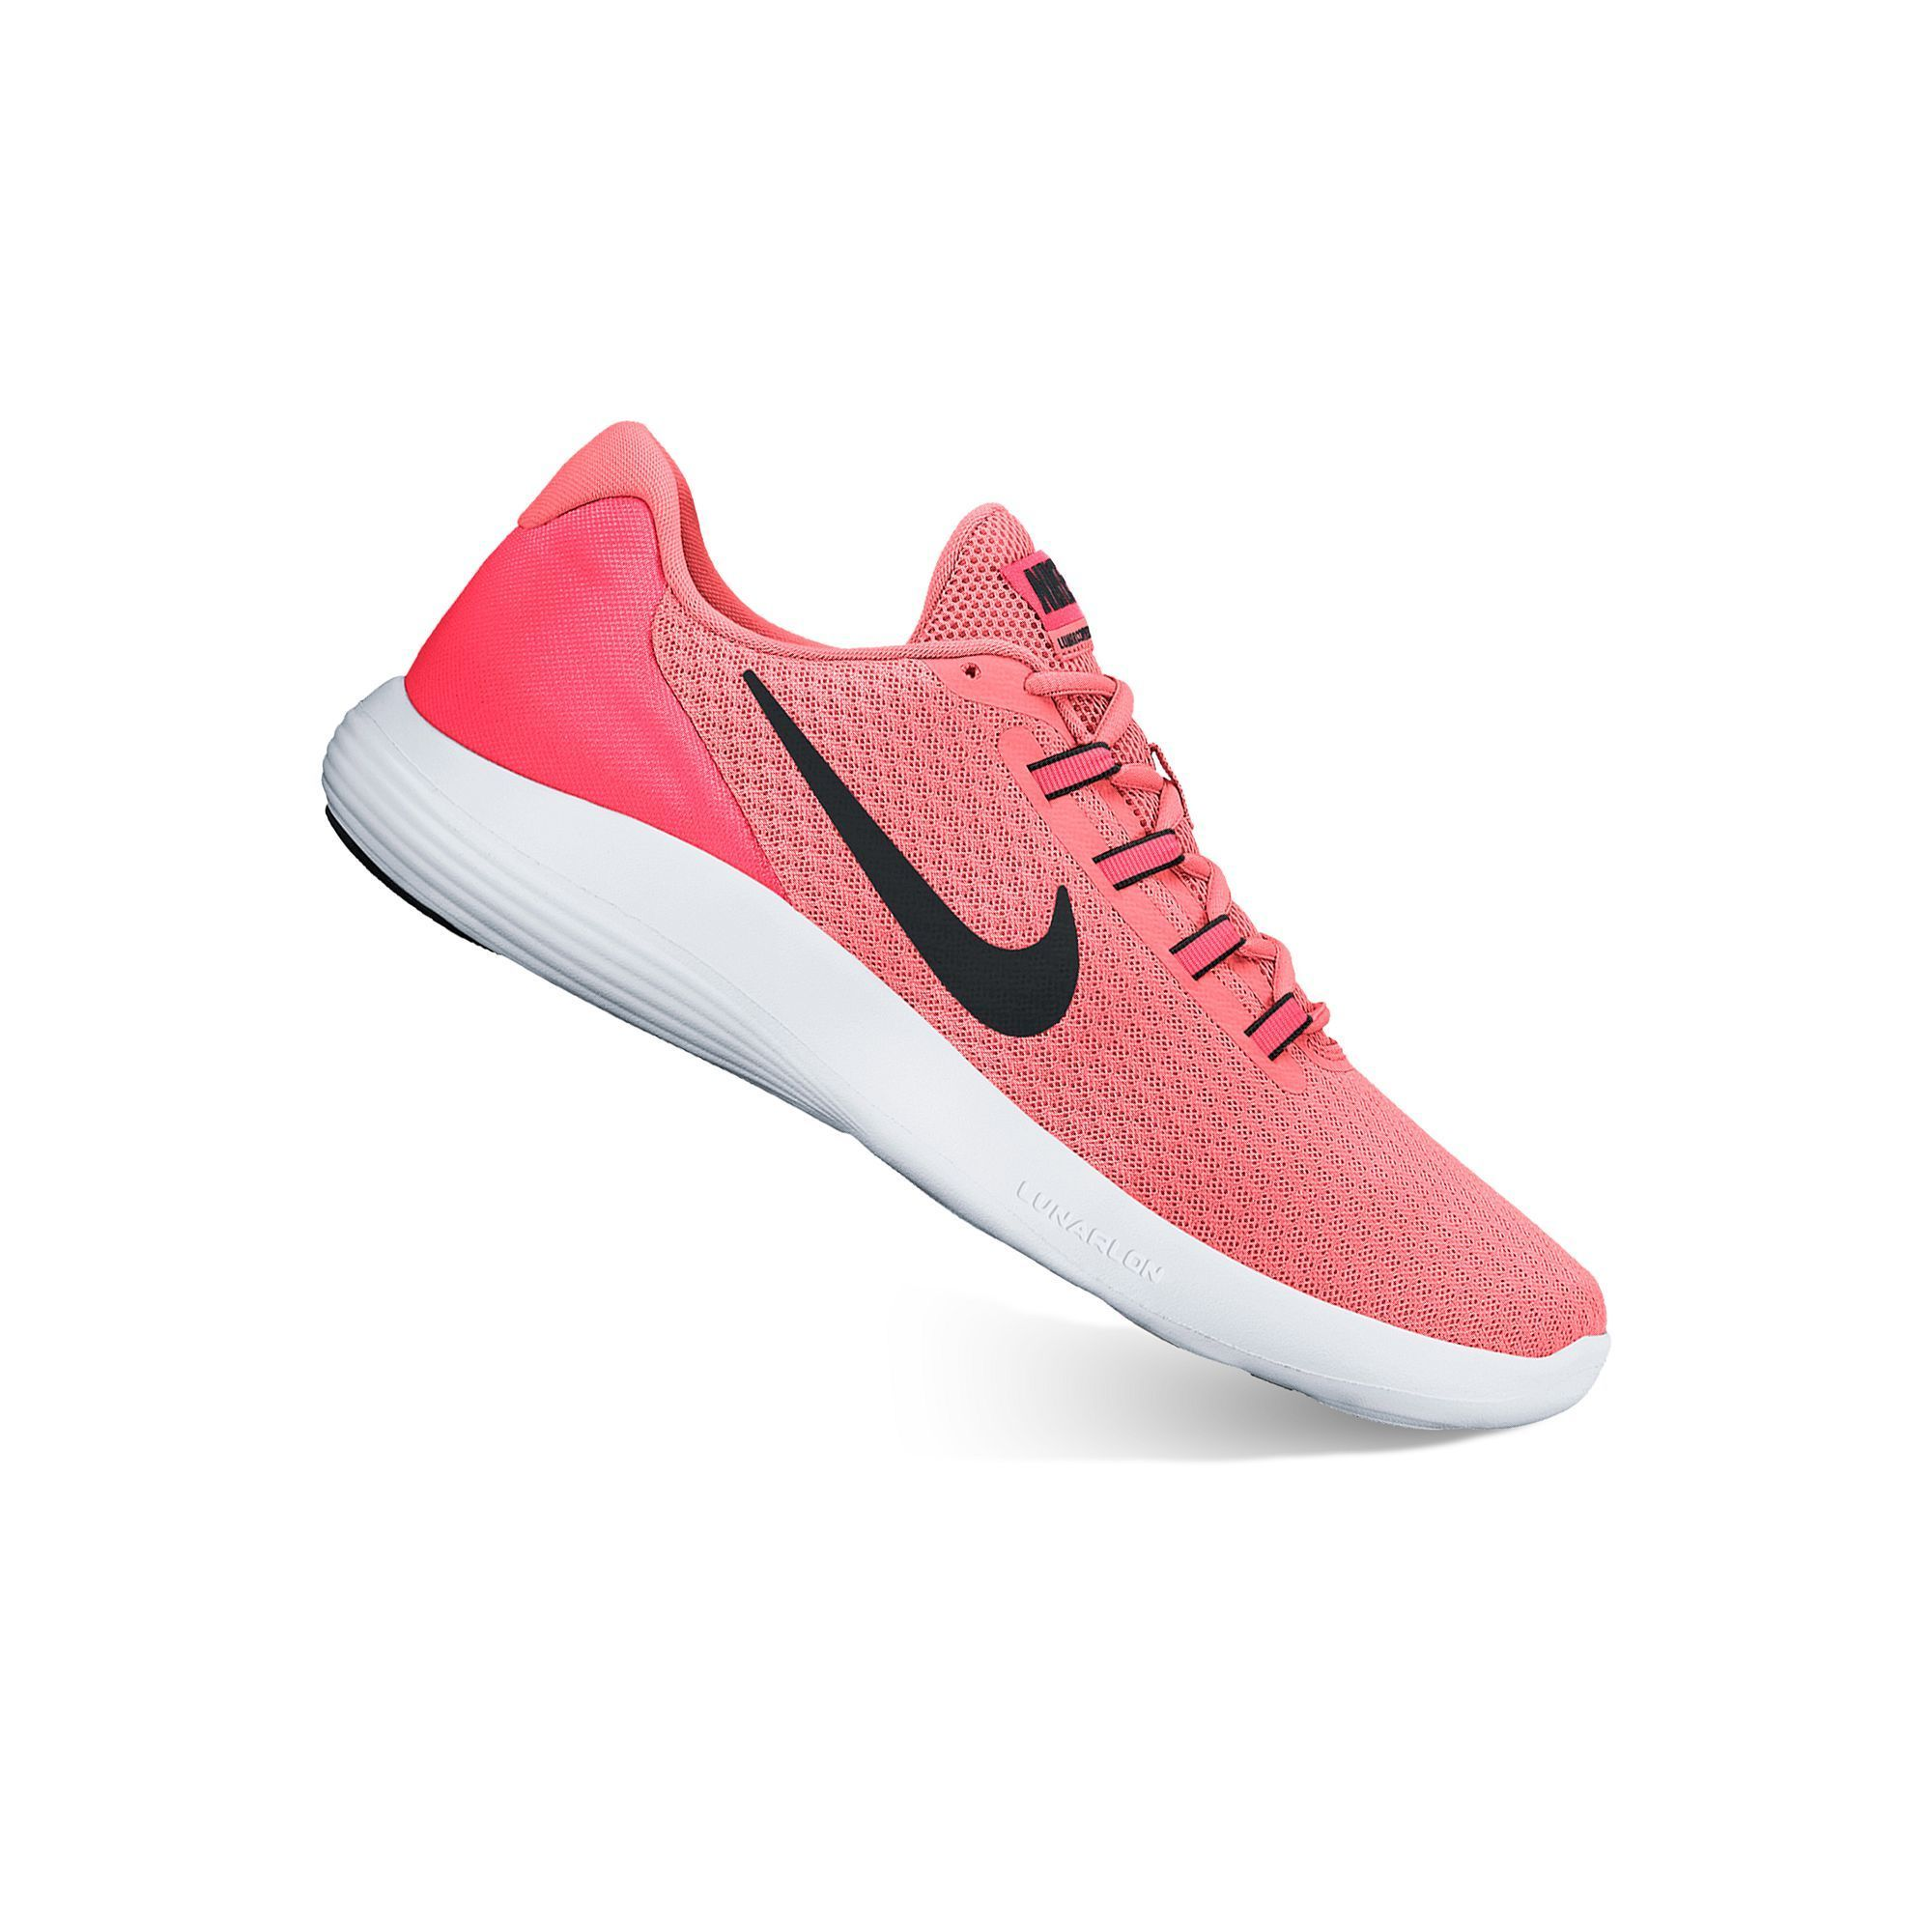 f1eed4f64342 Nike LunarConverge Women s Running Shoes in 2018